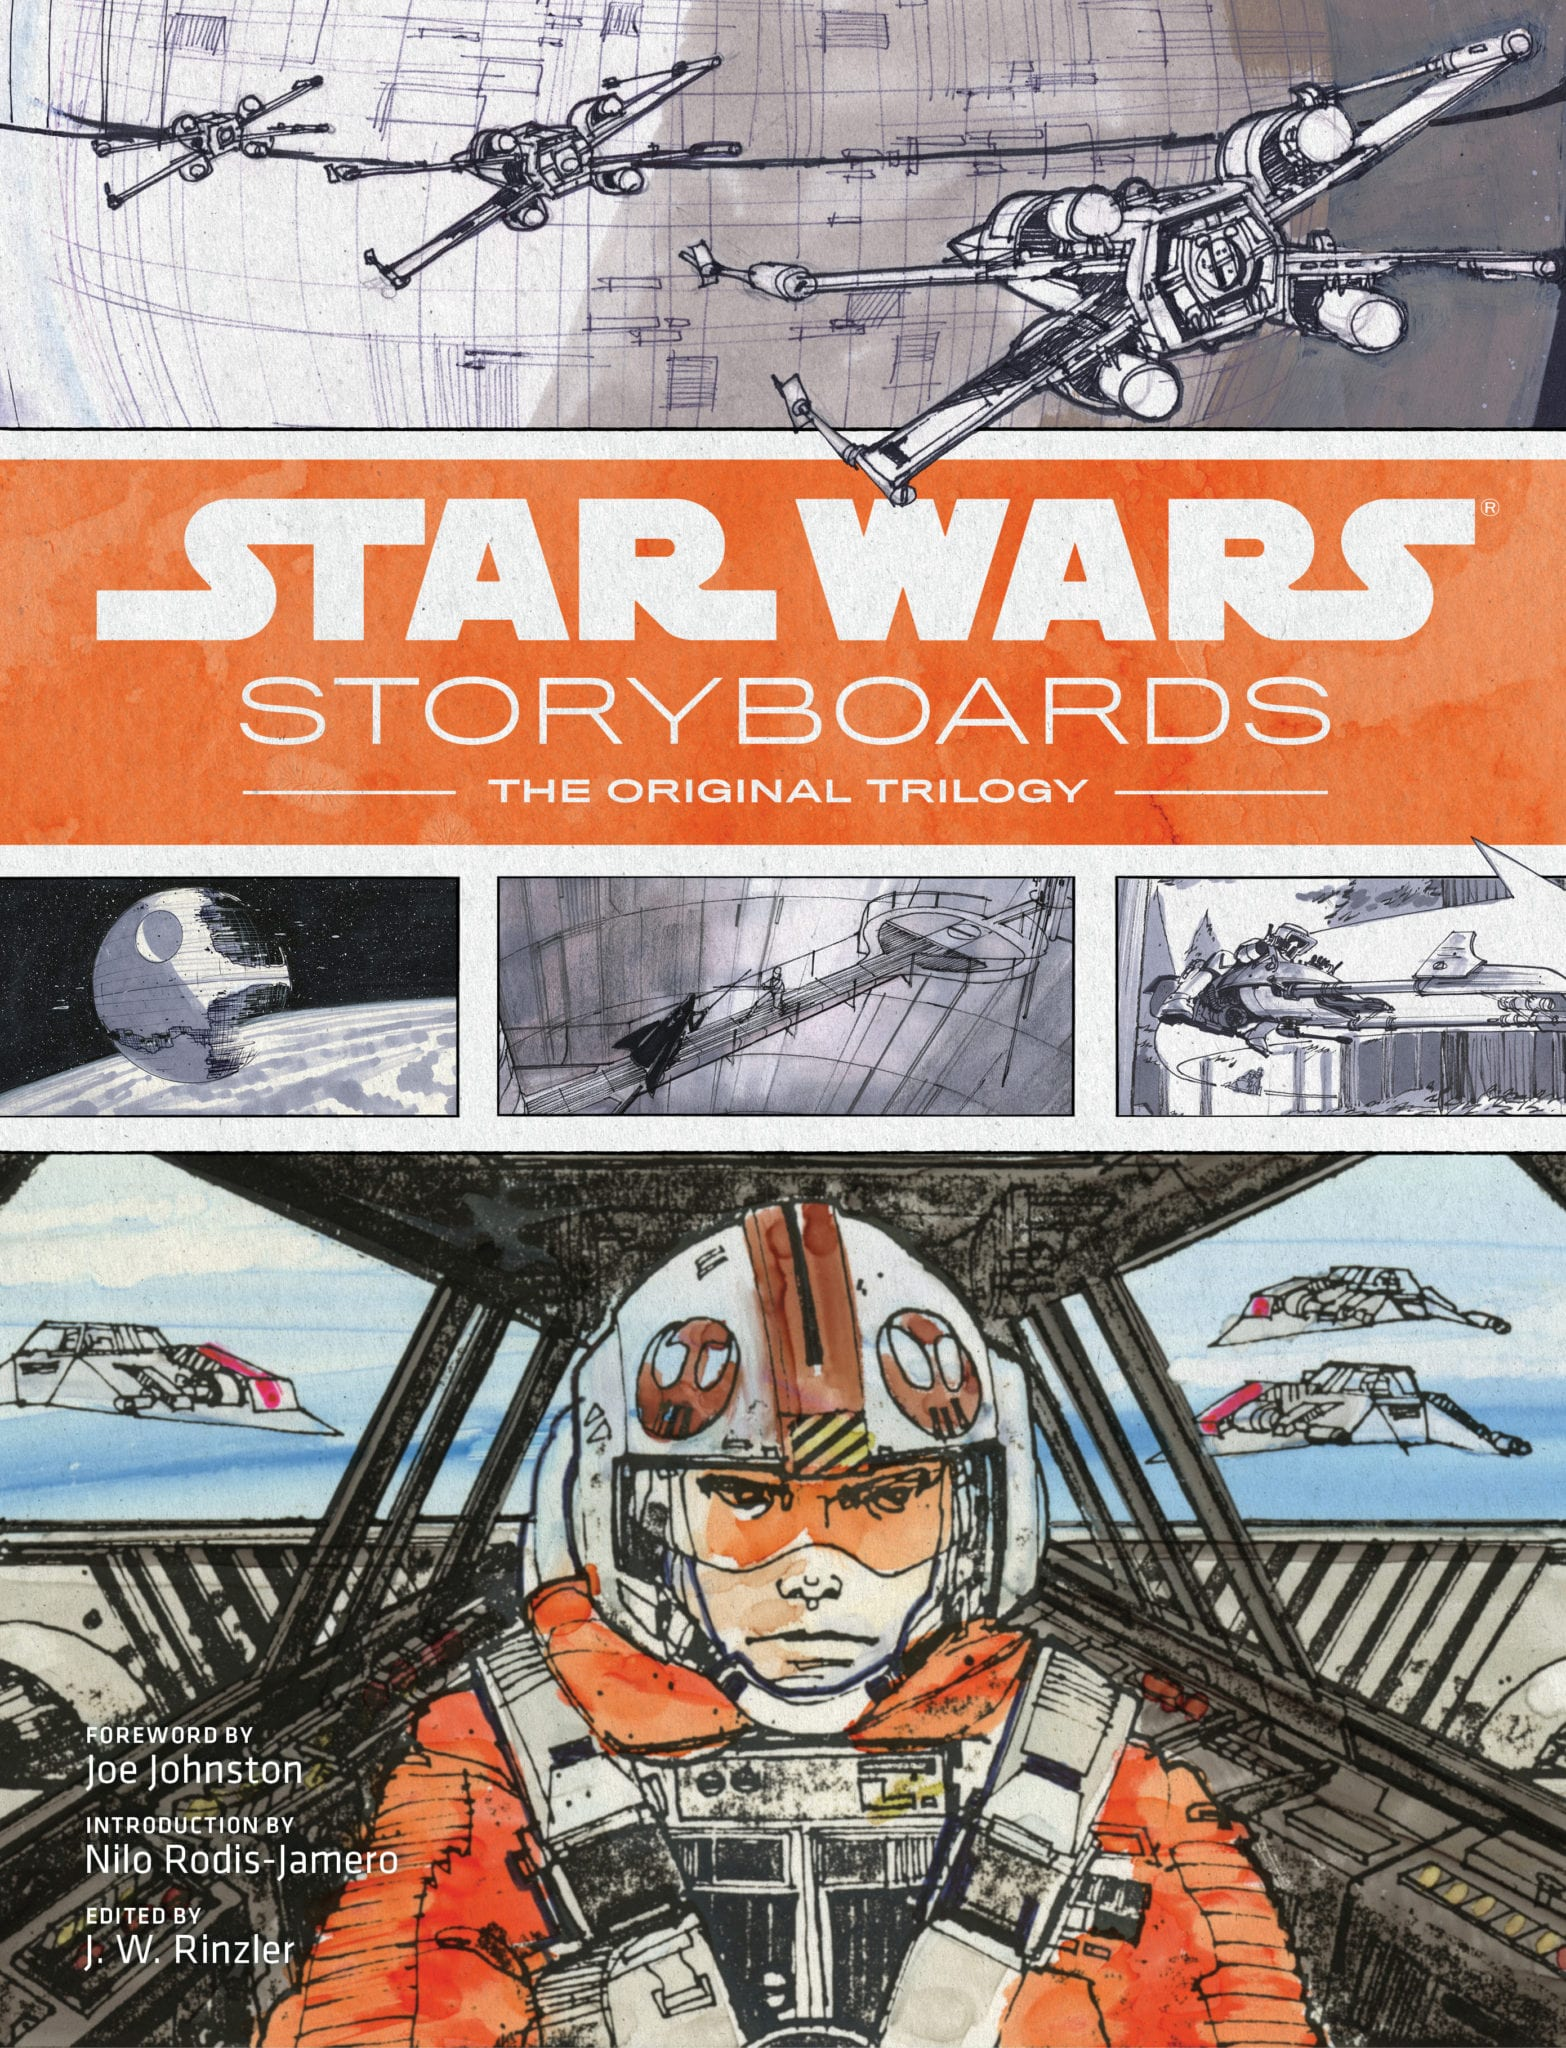 Book review star wars storyboards the original trilogy blast book review star wars storyboards the original trilogy malvernweather Choice Image